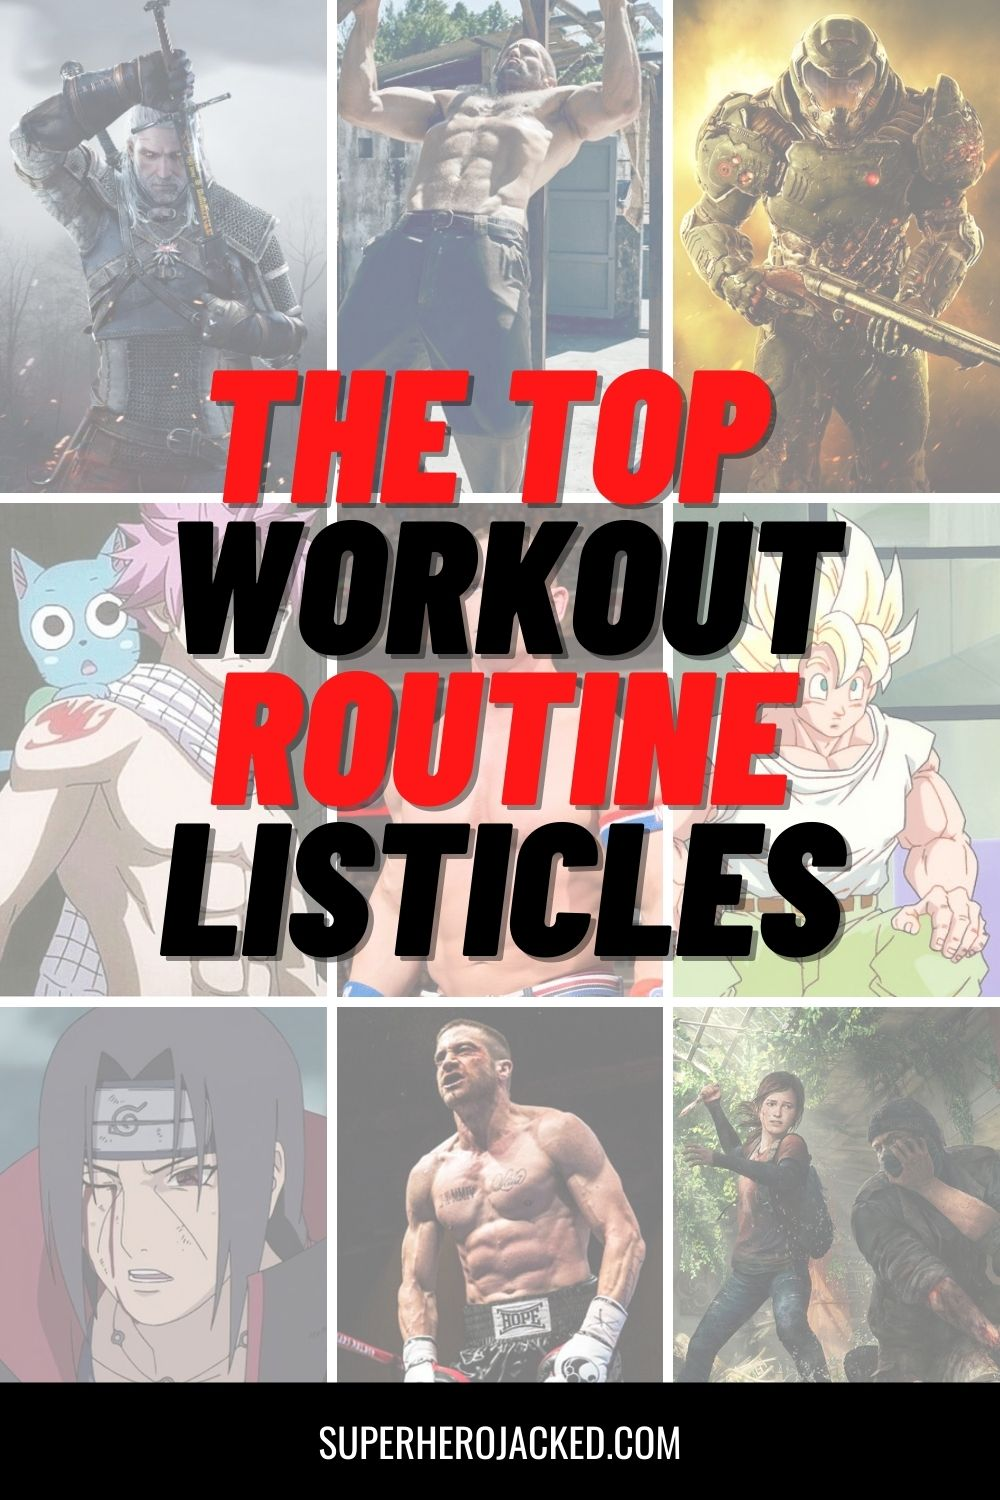 Top Workout Listicles